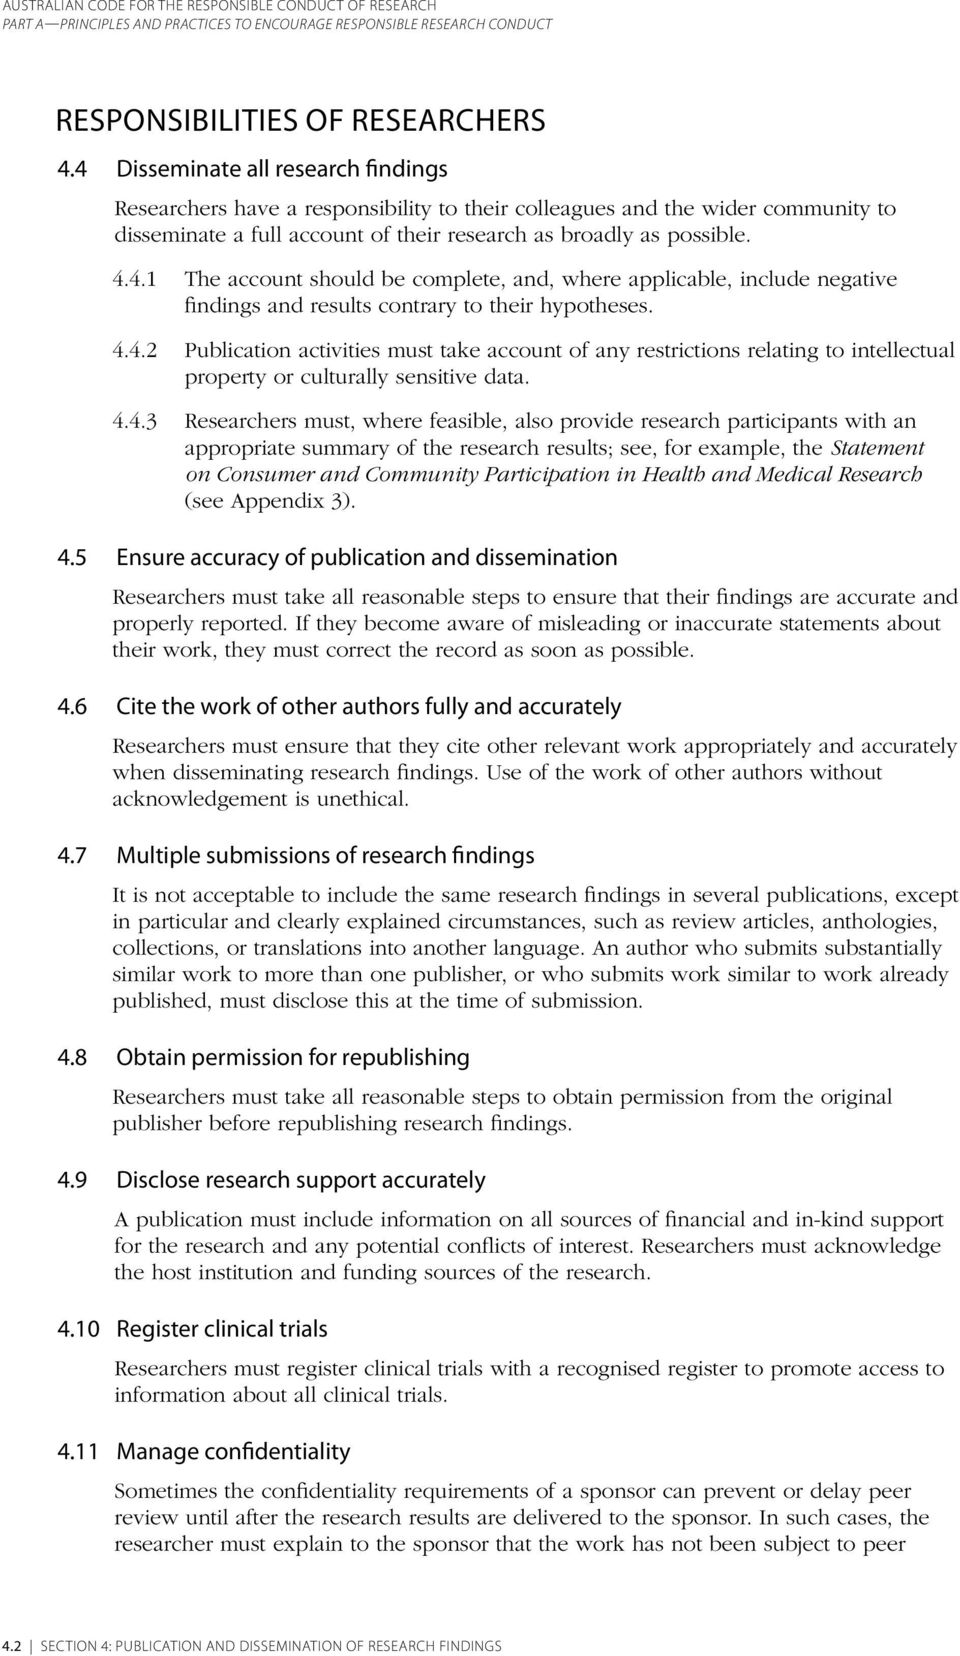 4.4.2 Publication activities must take account of any restrictions relating to intellectual property or culturally sensitive data. 4.4.3 Researchers must, where feasible, also provide research